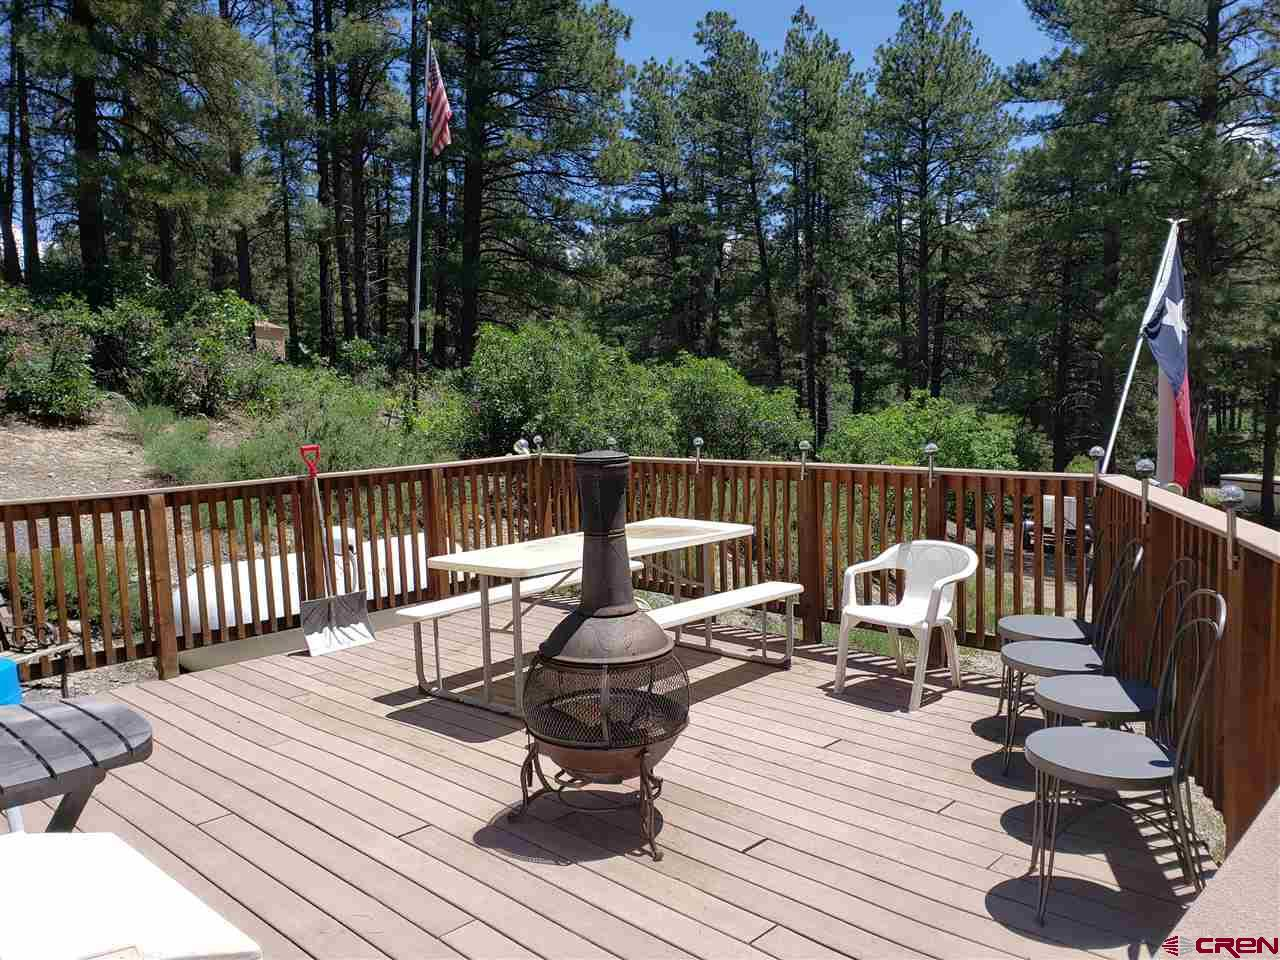 MLS# 768680 - 5 - 38 Spruce Circle, Pagosa Springs, CO 81147